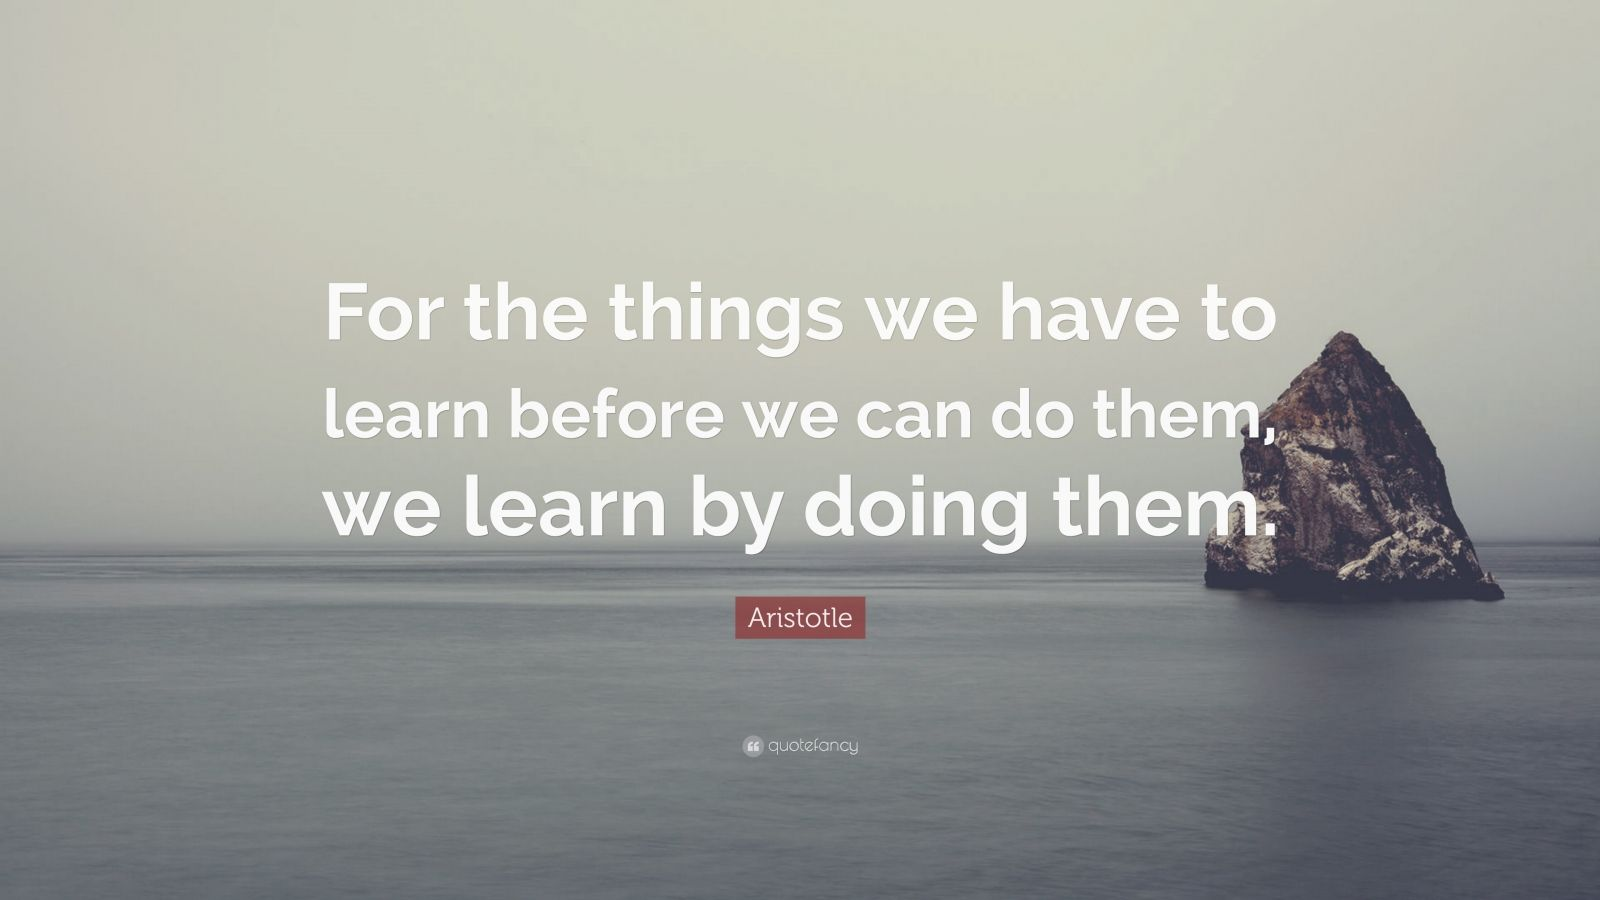 Aristotle Quote | Greece | Aristotle quotes, Quotes, Love ...